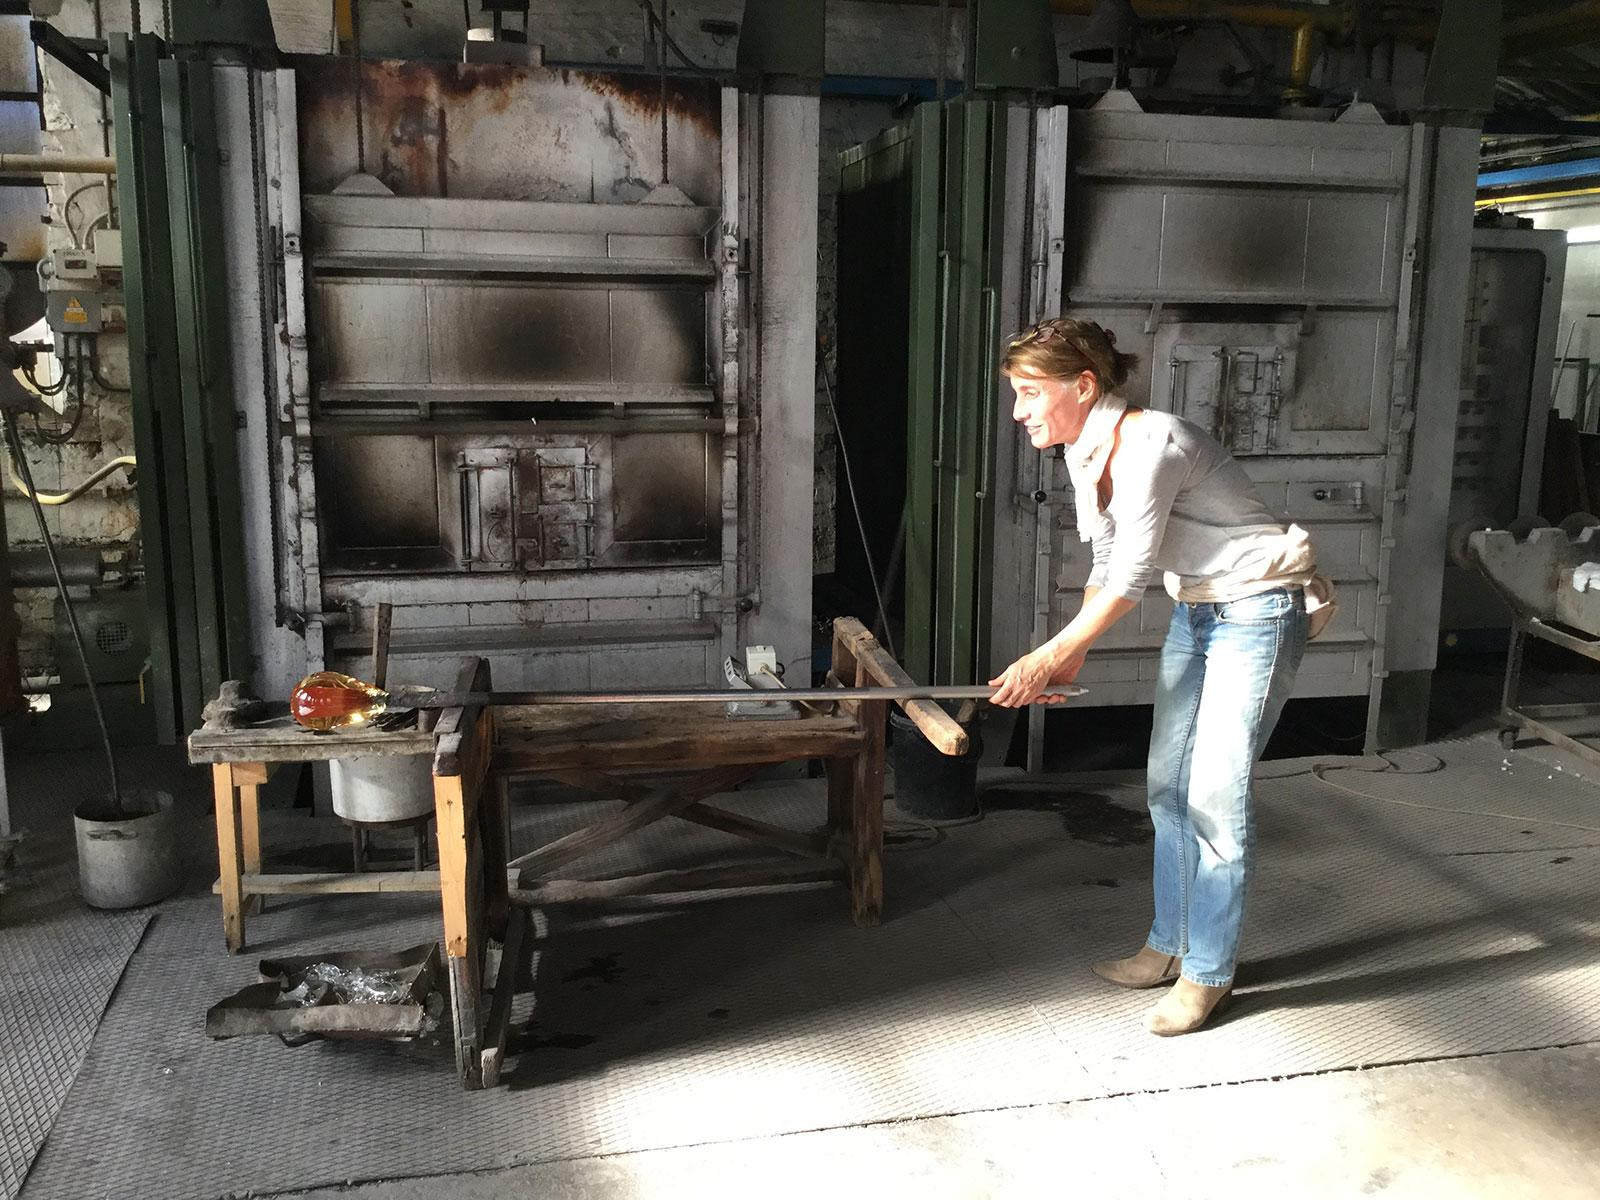 French sculptor Val - Valérie Goutard - in Murano glass workshop with Sculptureval